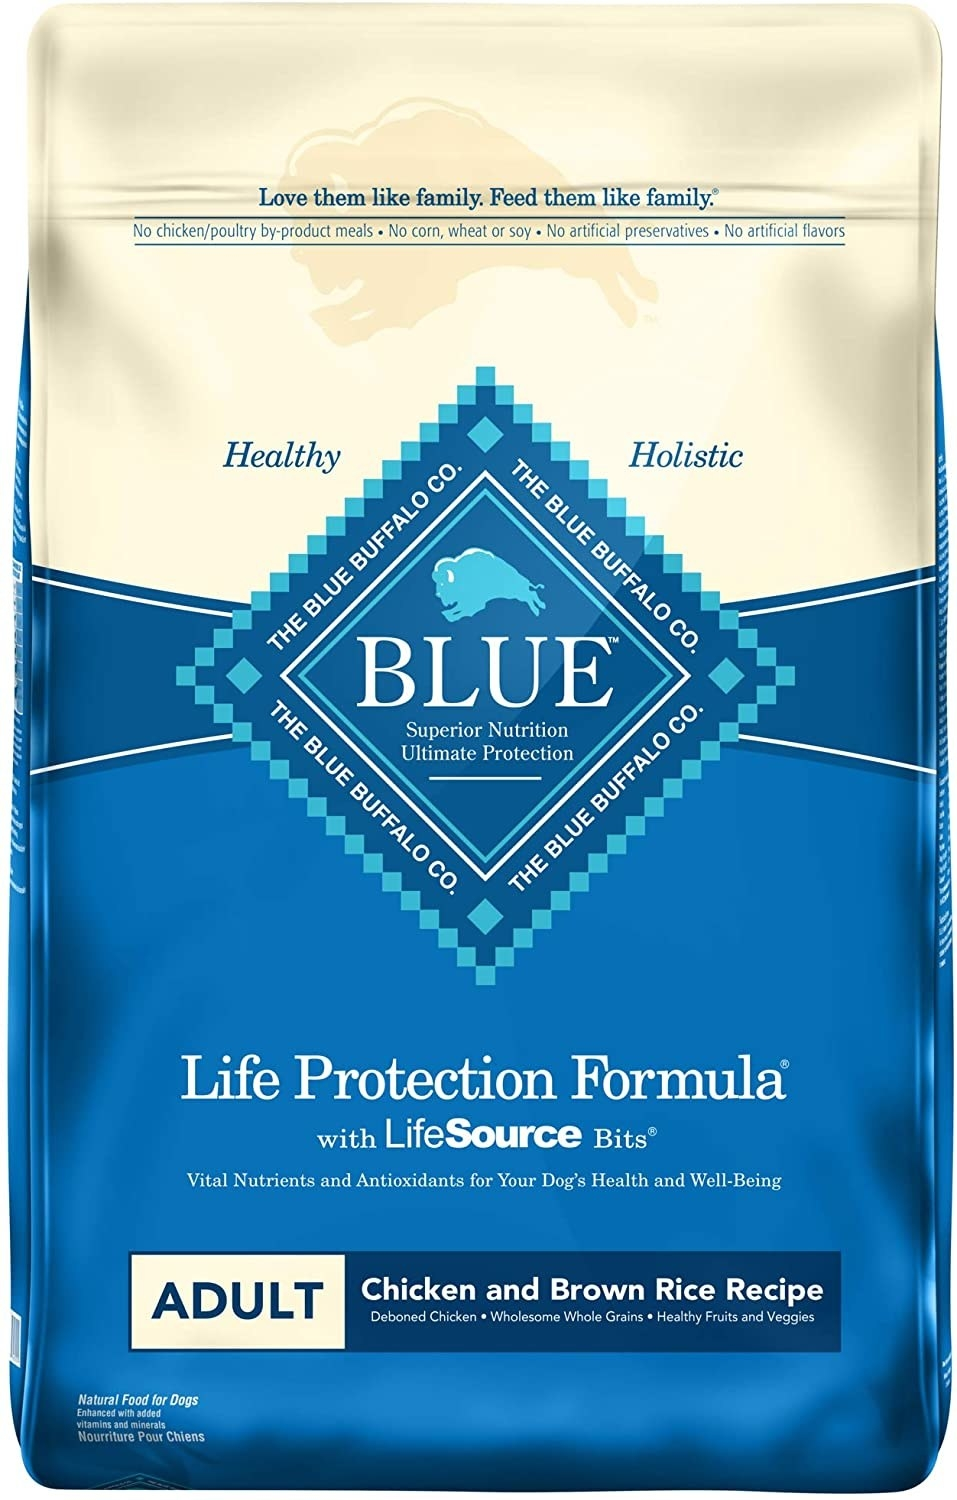 a bag of blue buffalo dog food in chicken and brown rice recipe